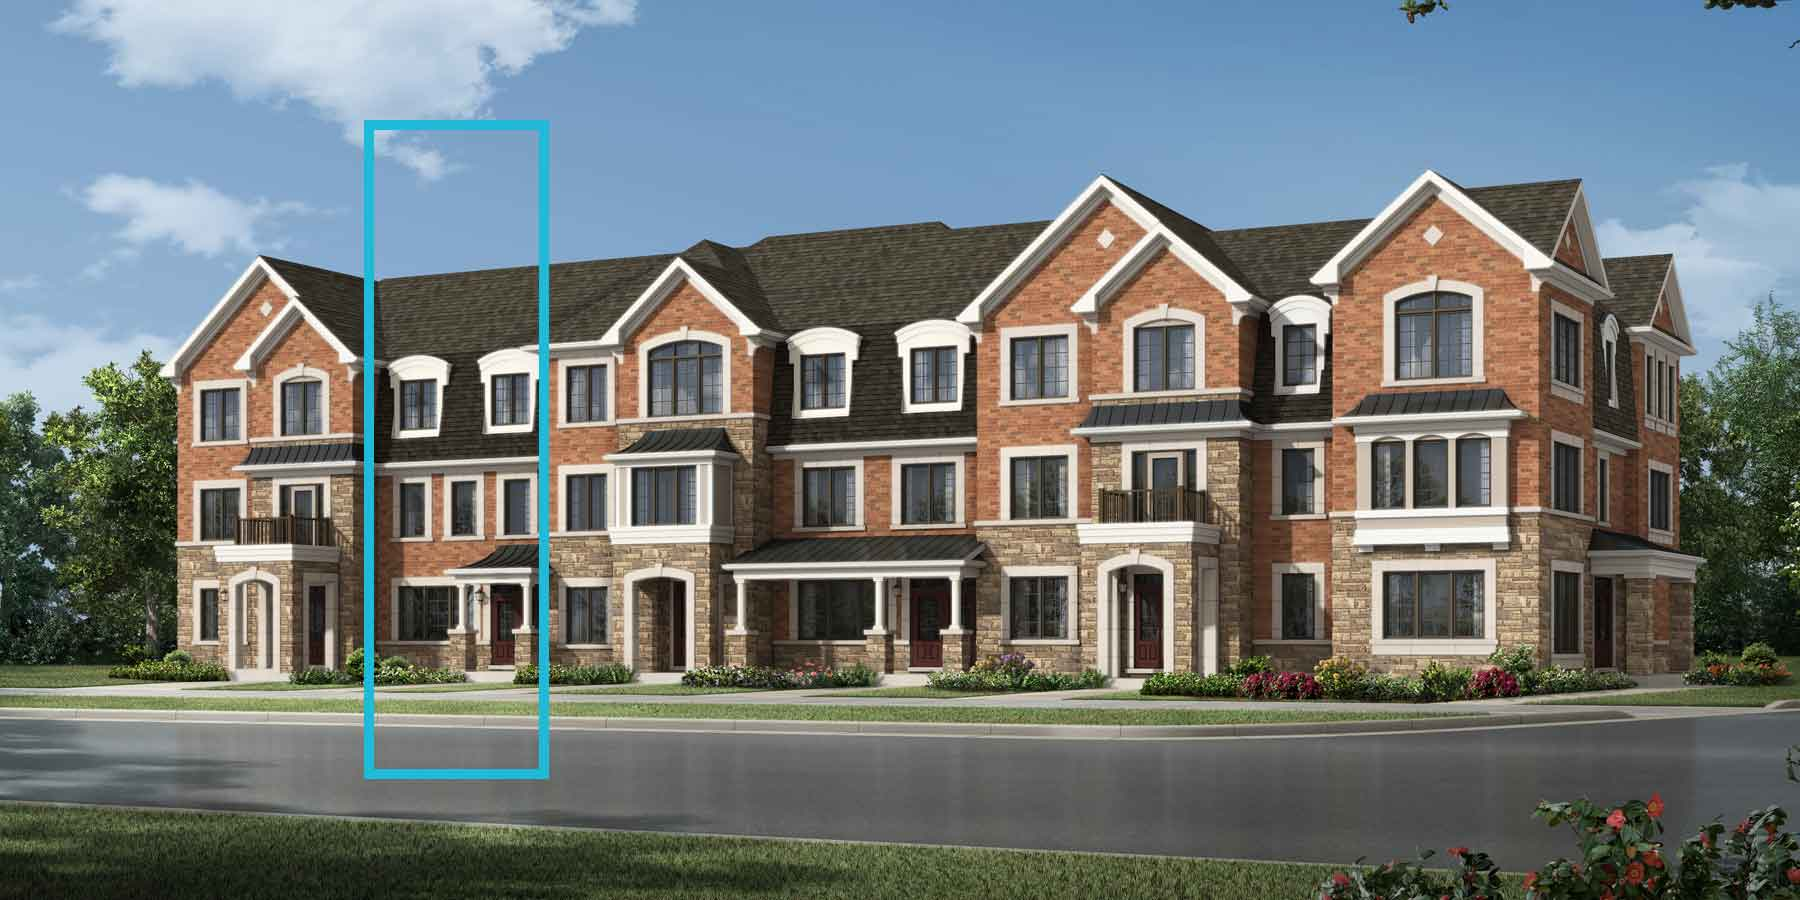 Seaton Whitevale TownHomes in Pickering Ontario by Mattamy Homes